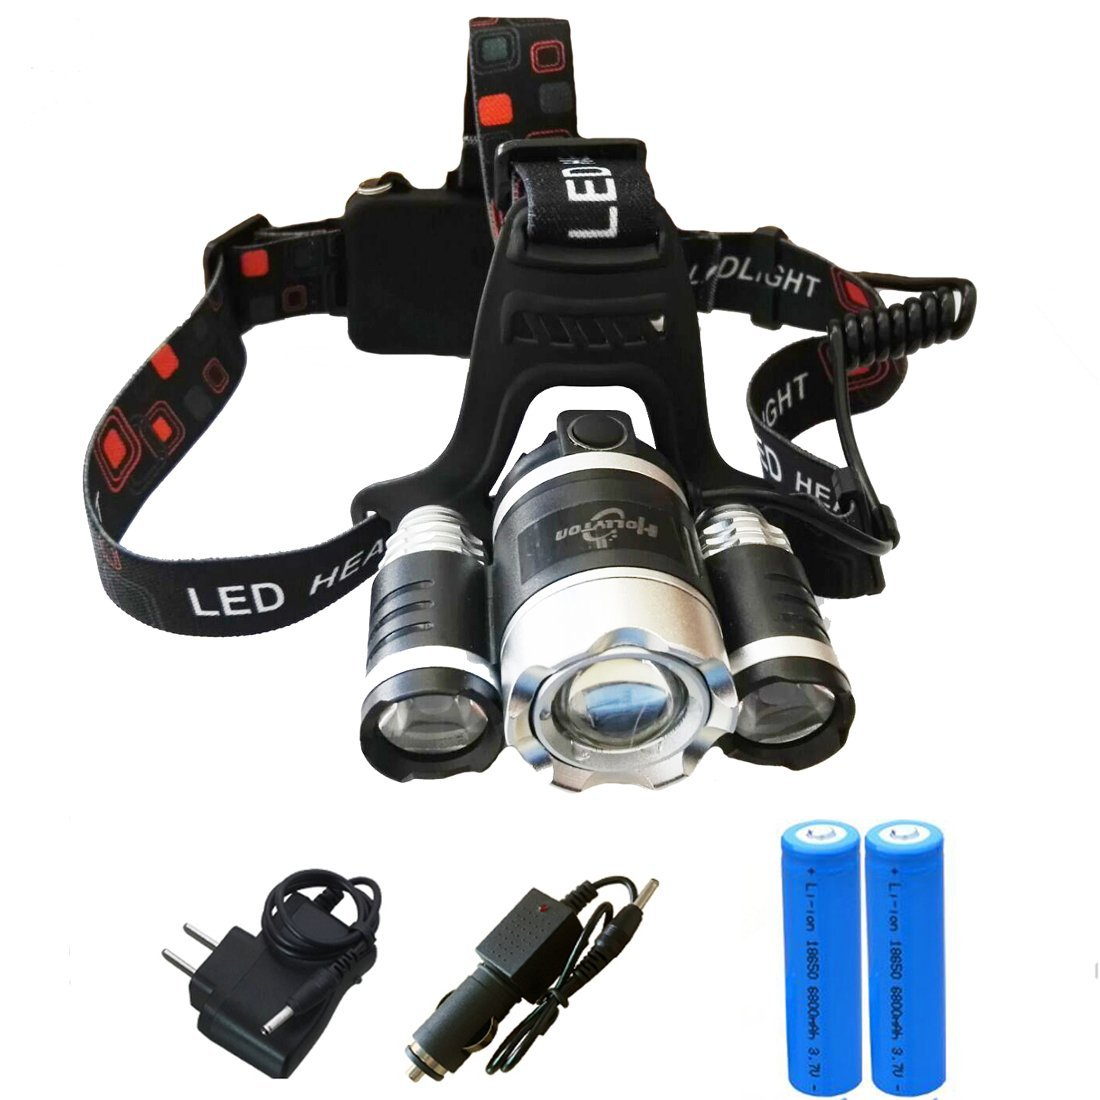 Skycoolwin Ultra Bright Zoomable LED Headlamp Flashlight - 4 Light-Modes. Perfect Hands-Free Portable Work light and Power Sports Headlight